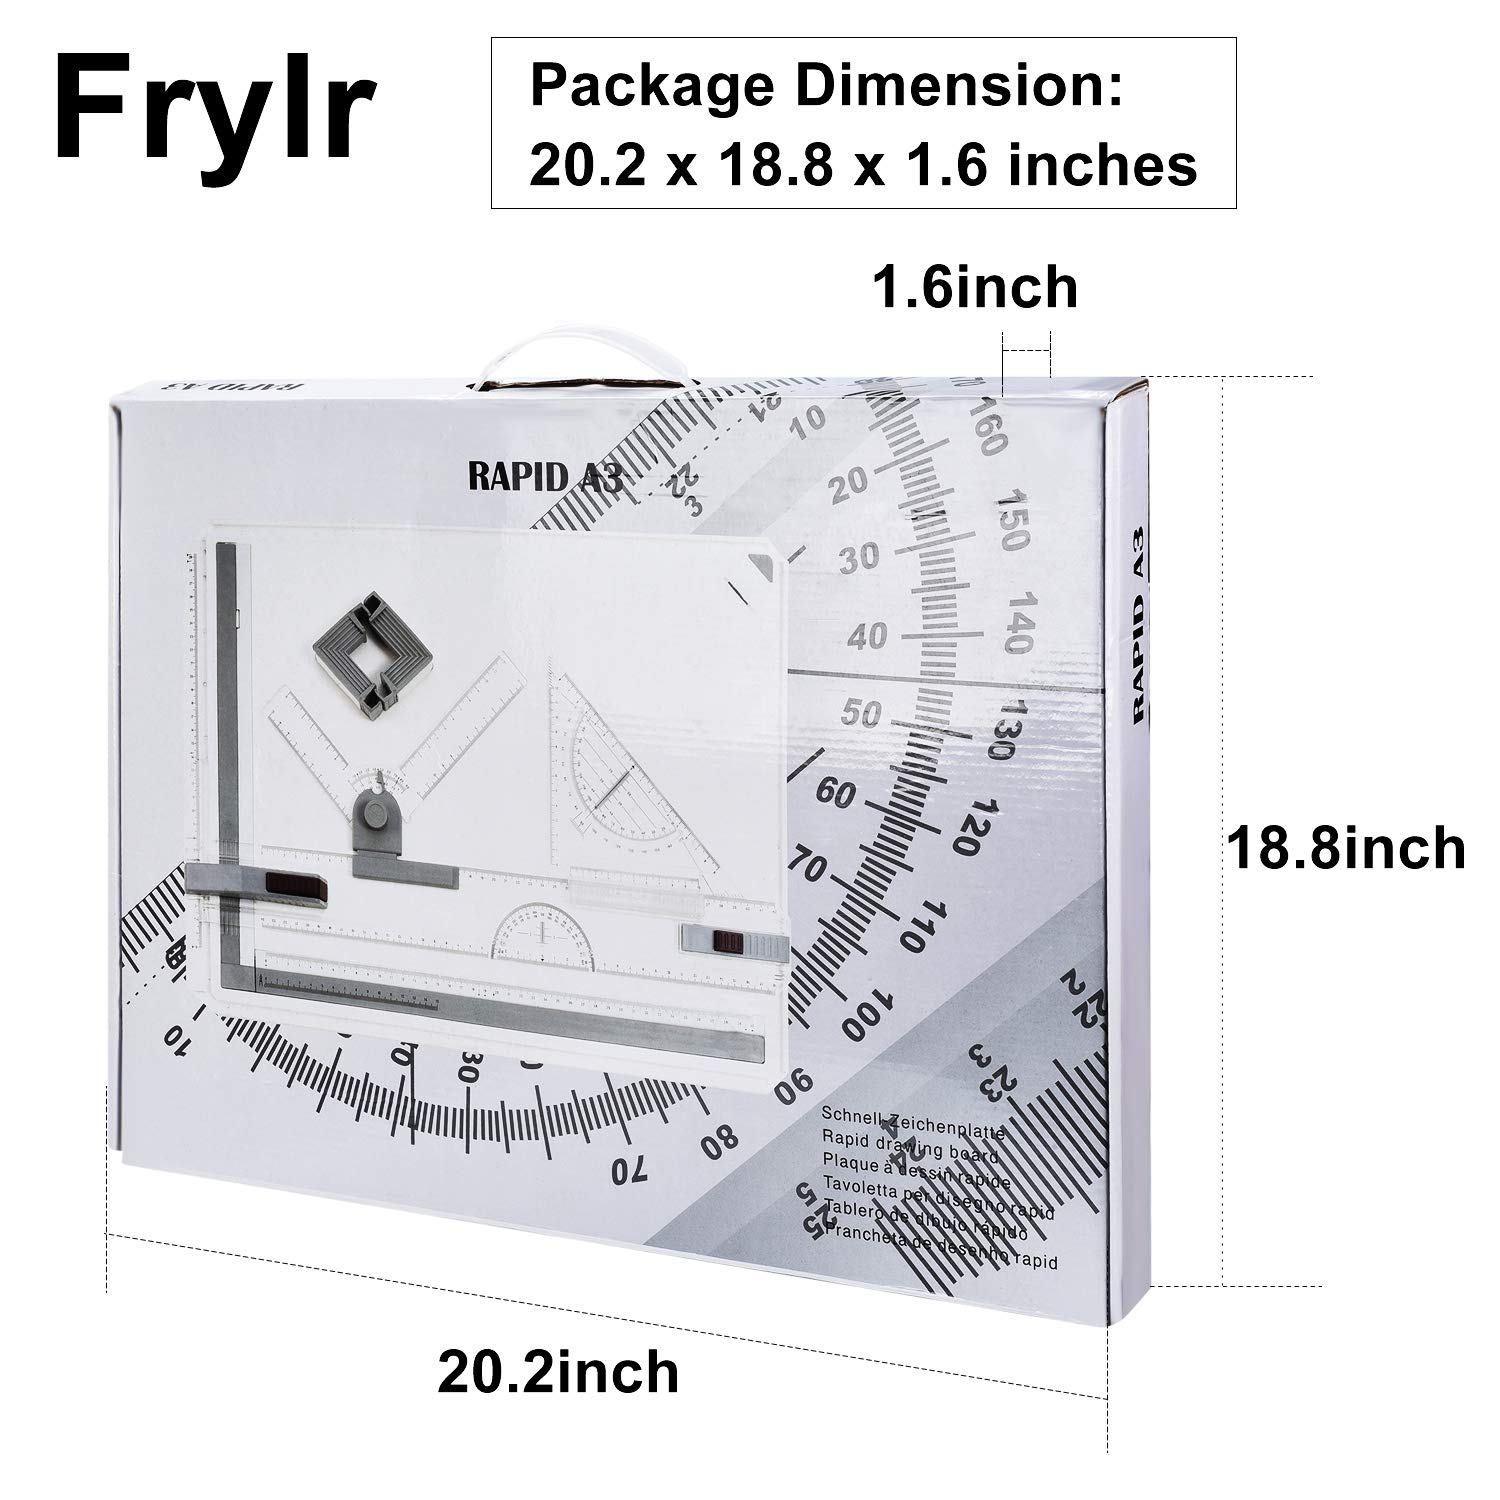 Frylr Metric A3 Drawing Board Drafting Table Multifunctional Ergonomic Designed Adjustable Angle Rulers Portable Drawing Measuring System